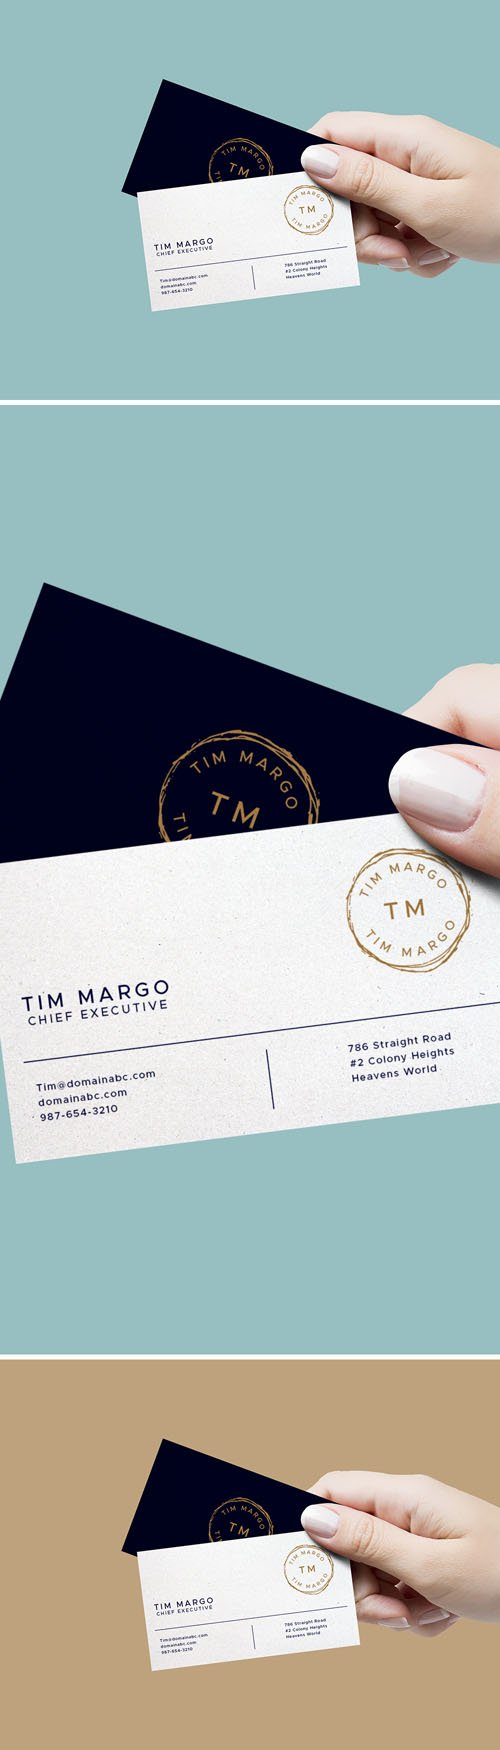 Hand Holding Business Cards PSD Mockup